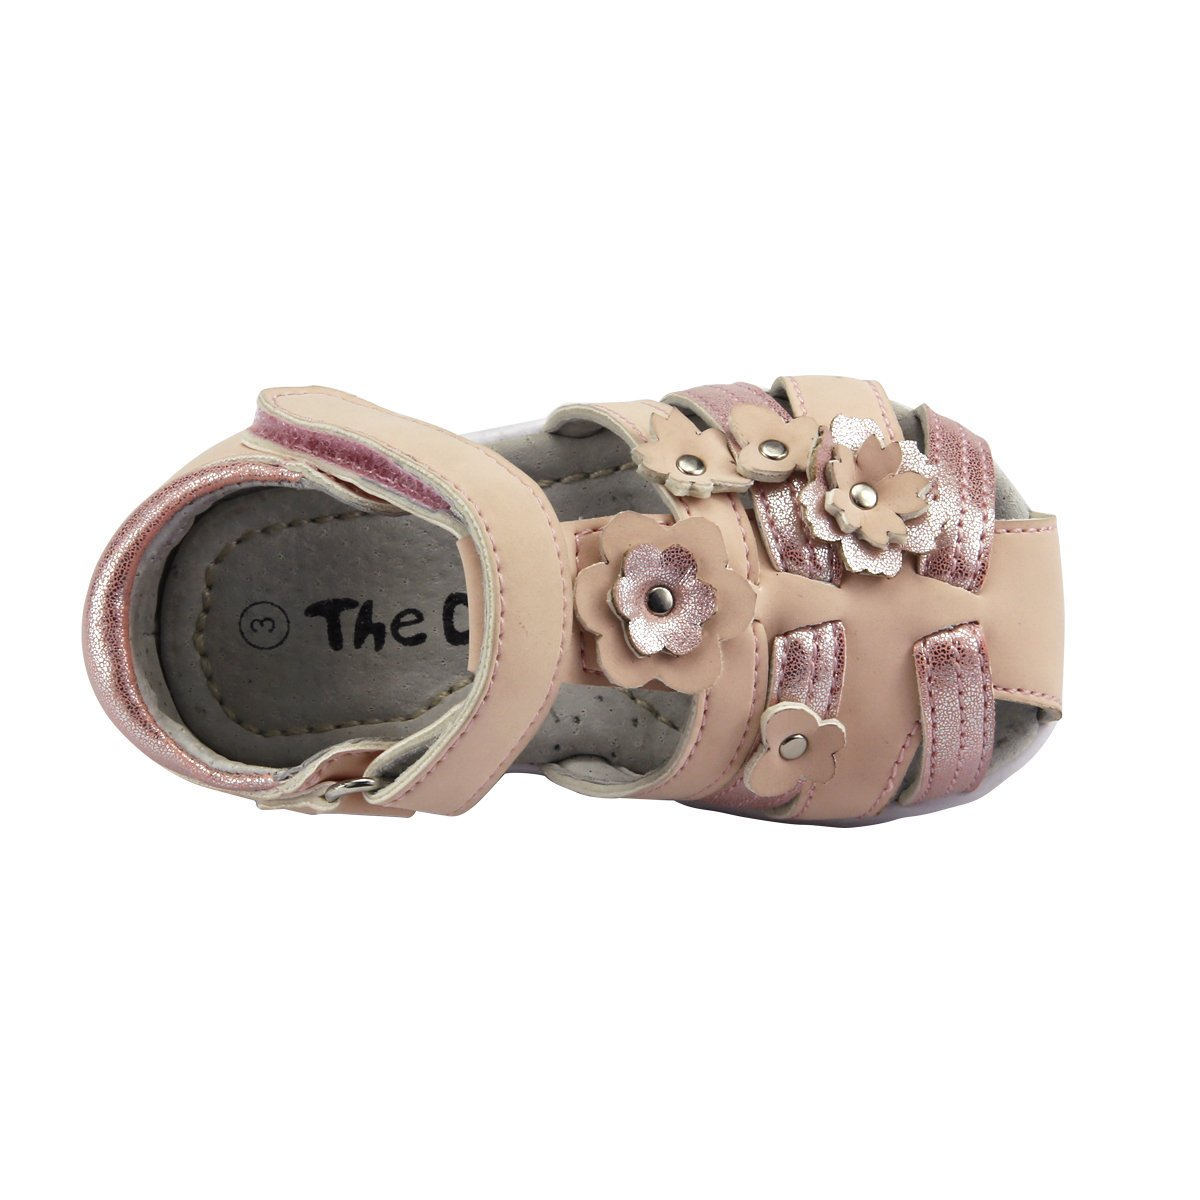 Baby Girls 3d Flowers Sandals Shoes Two-tone Colors Peach Toddler Size 7